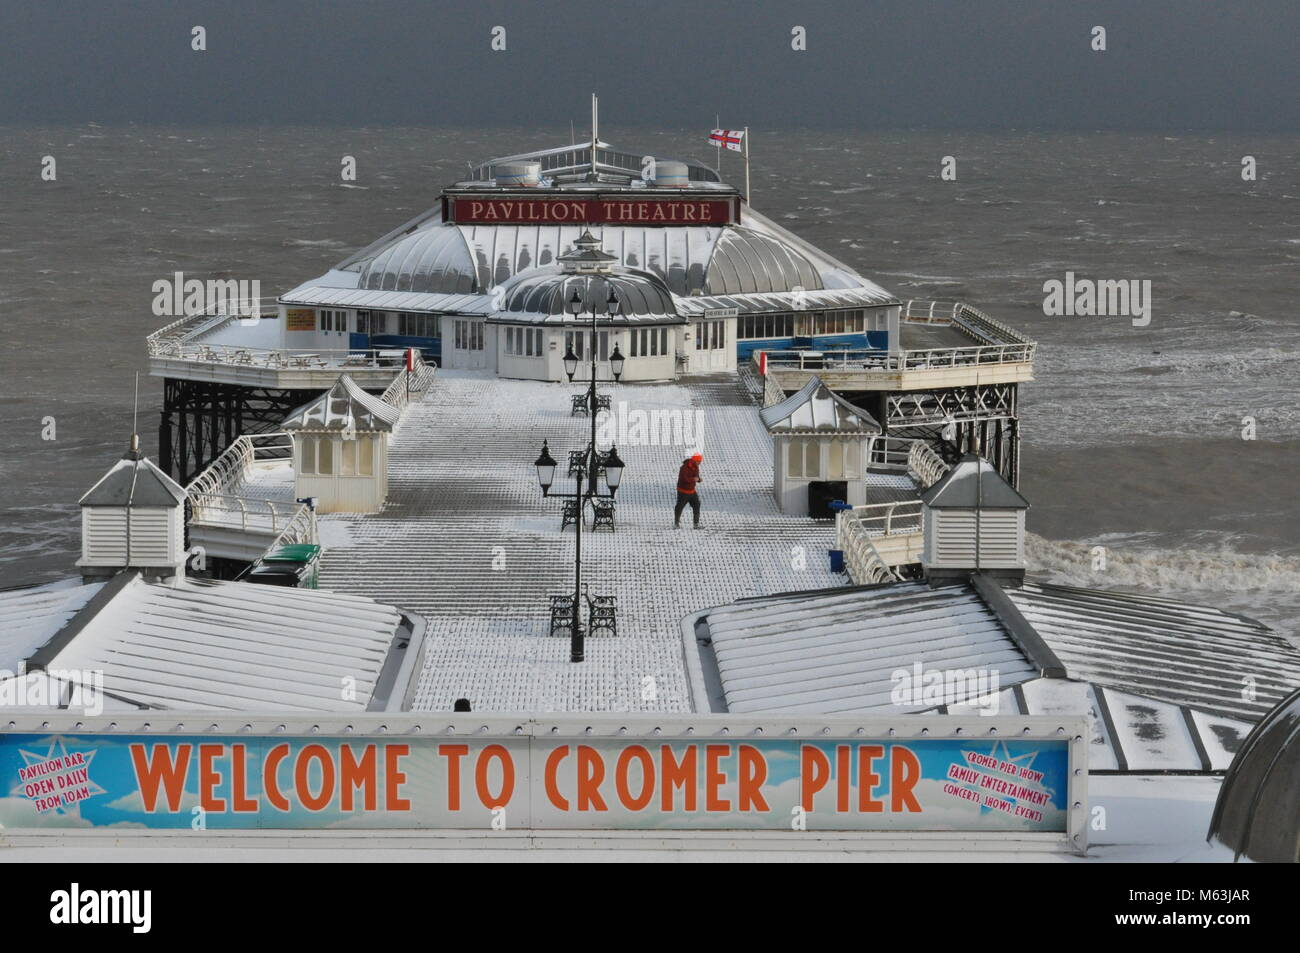 Cromer pier during the Beast from the East, Feb 28th 2018, Norfolk UK - Stock Image